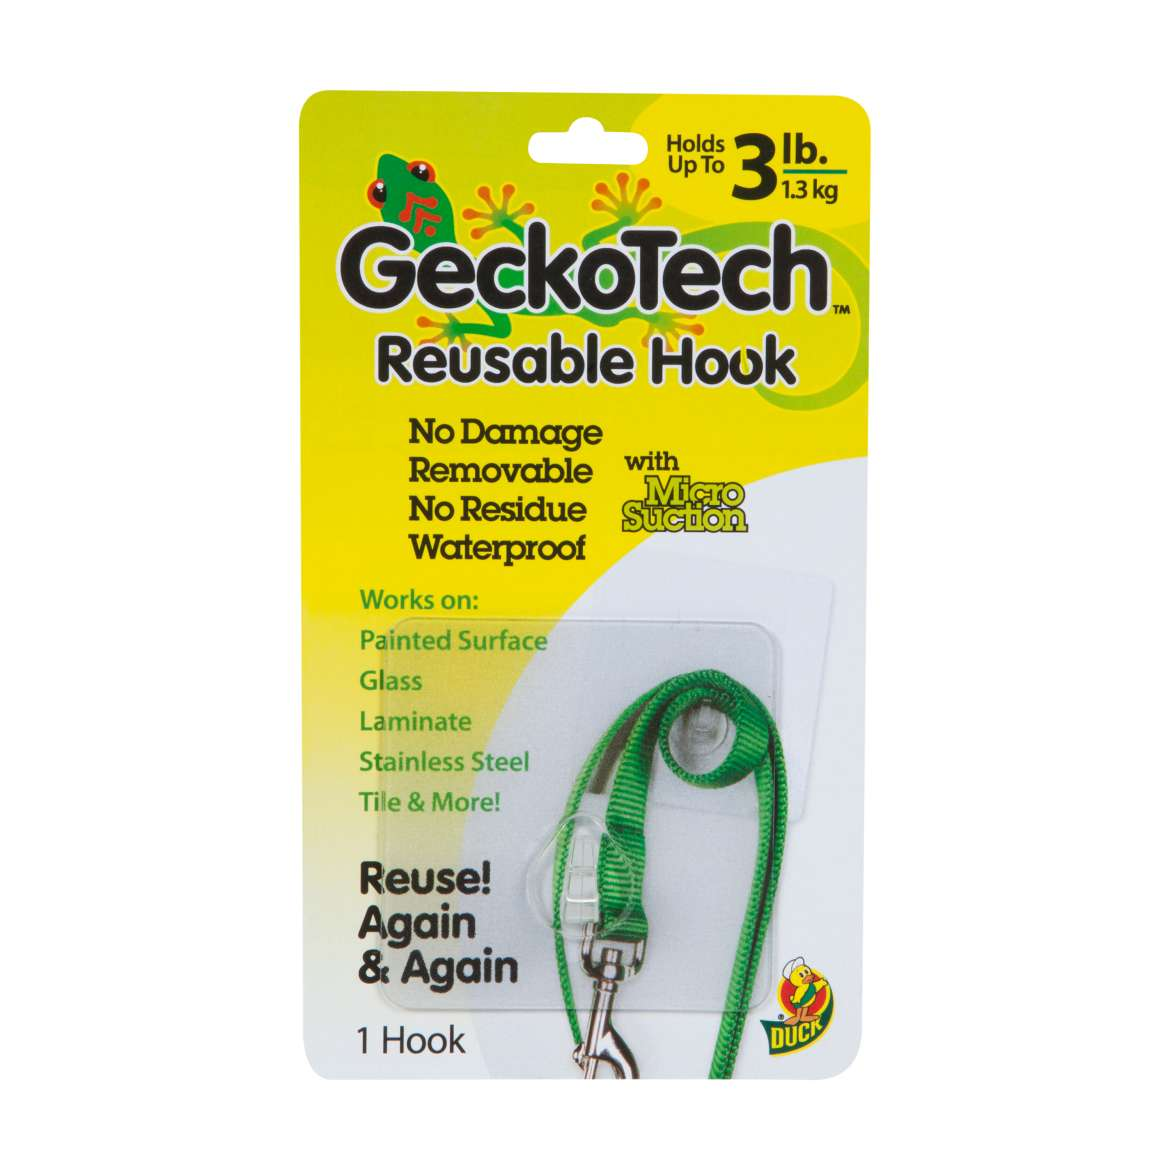 GeckoTech™ Removable Hook - Clear, Holds up to 3 lb. Image